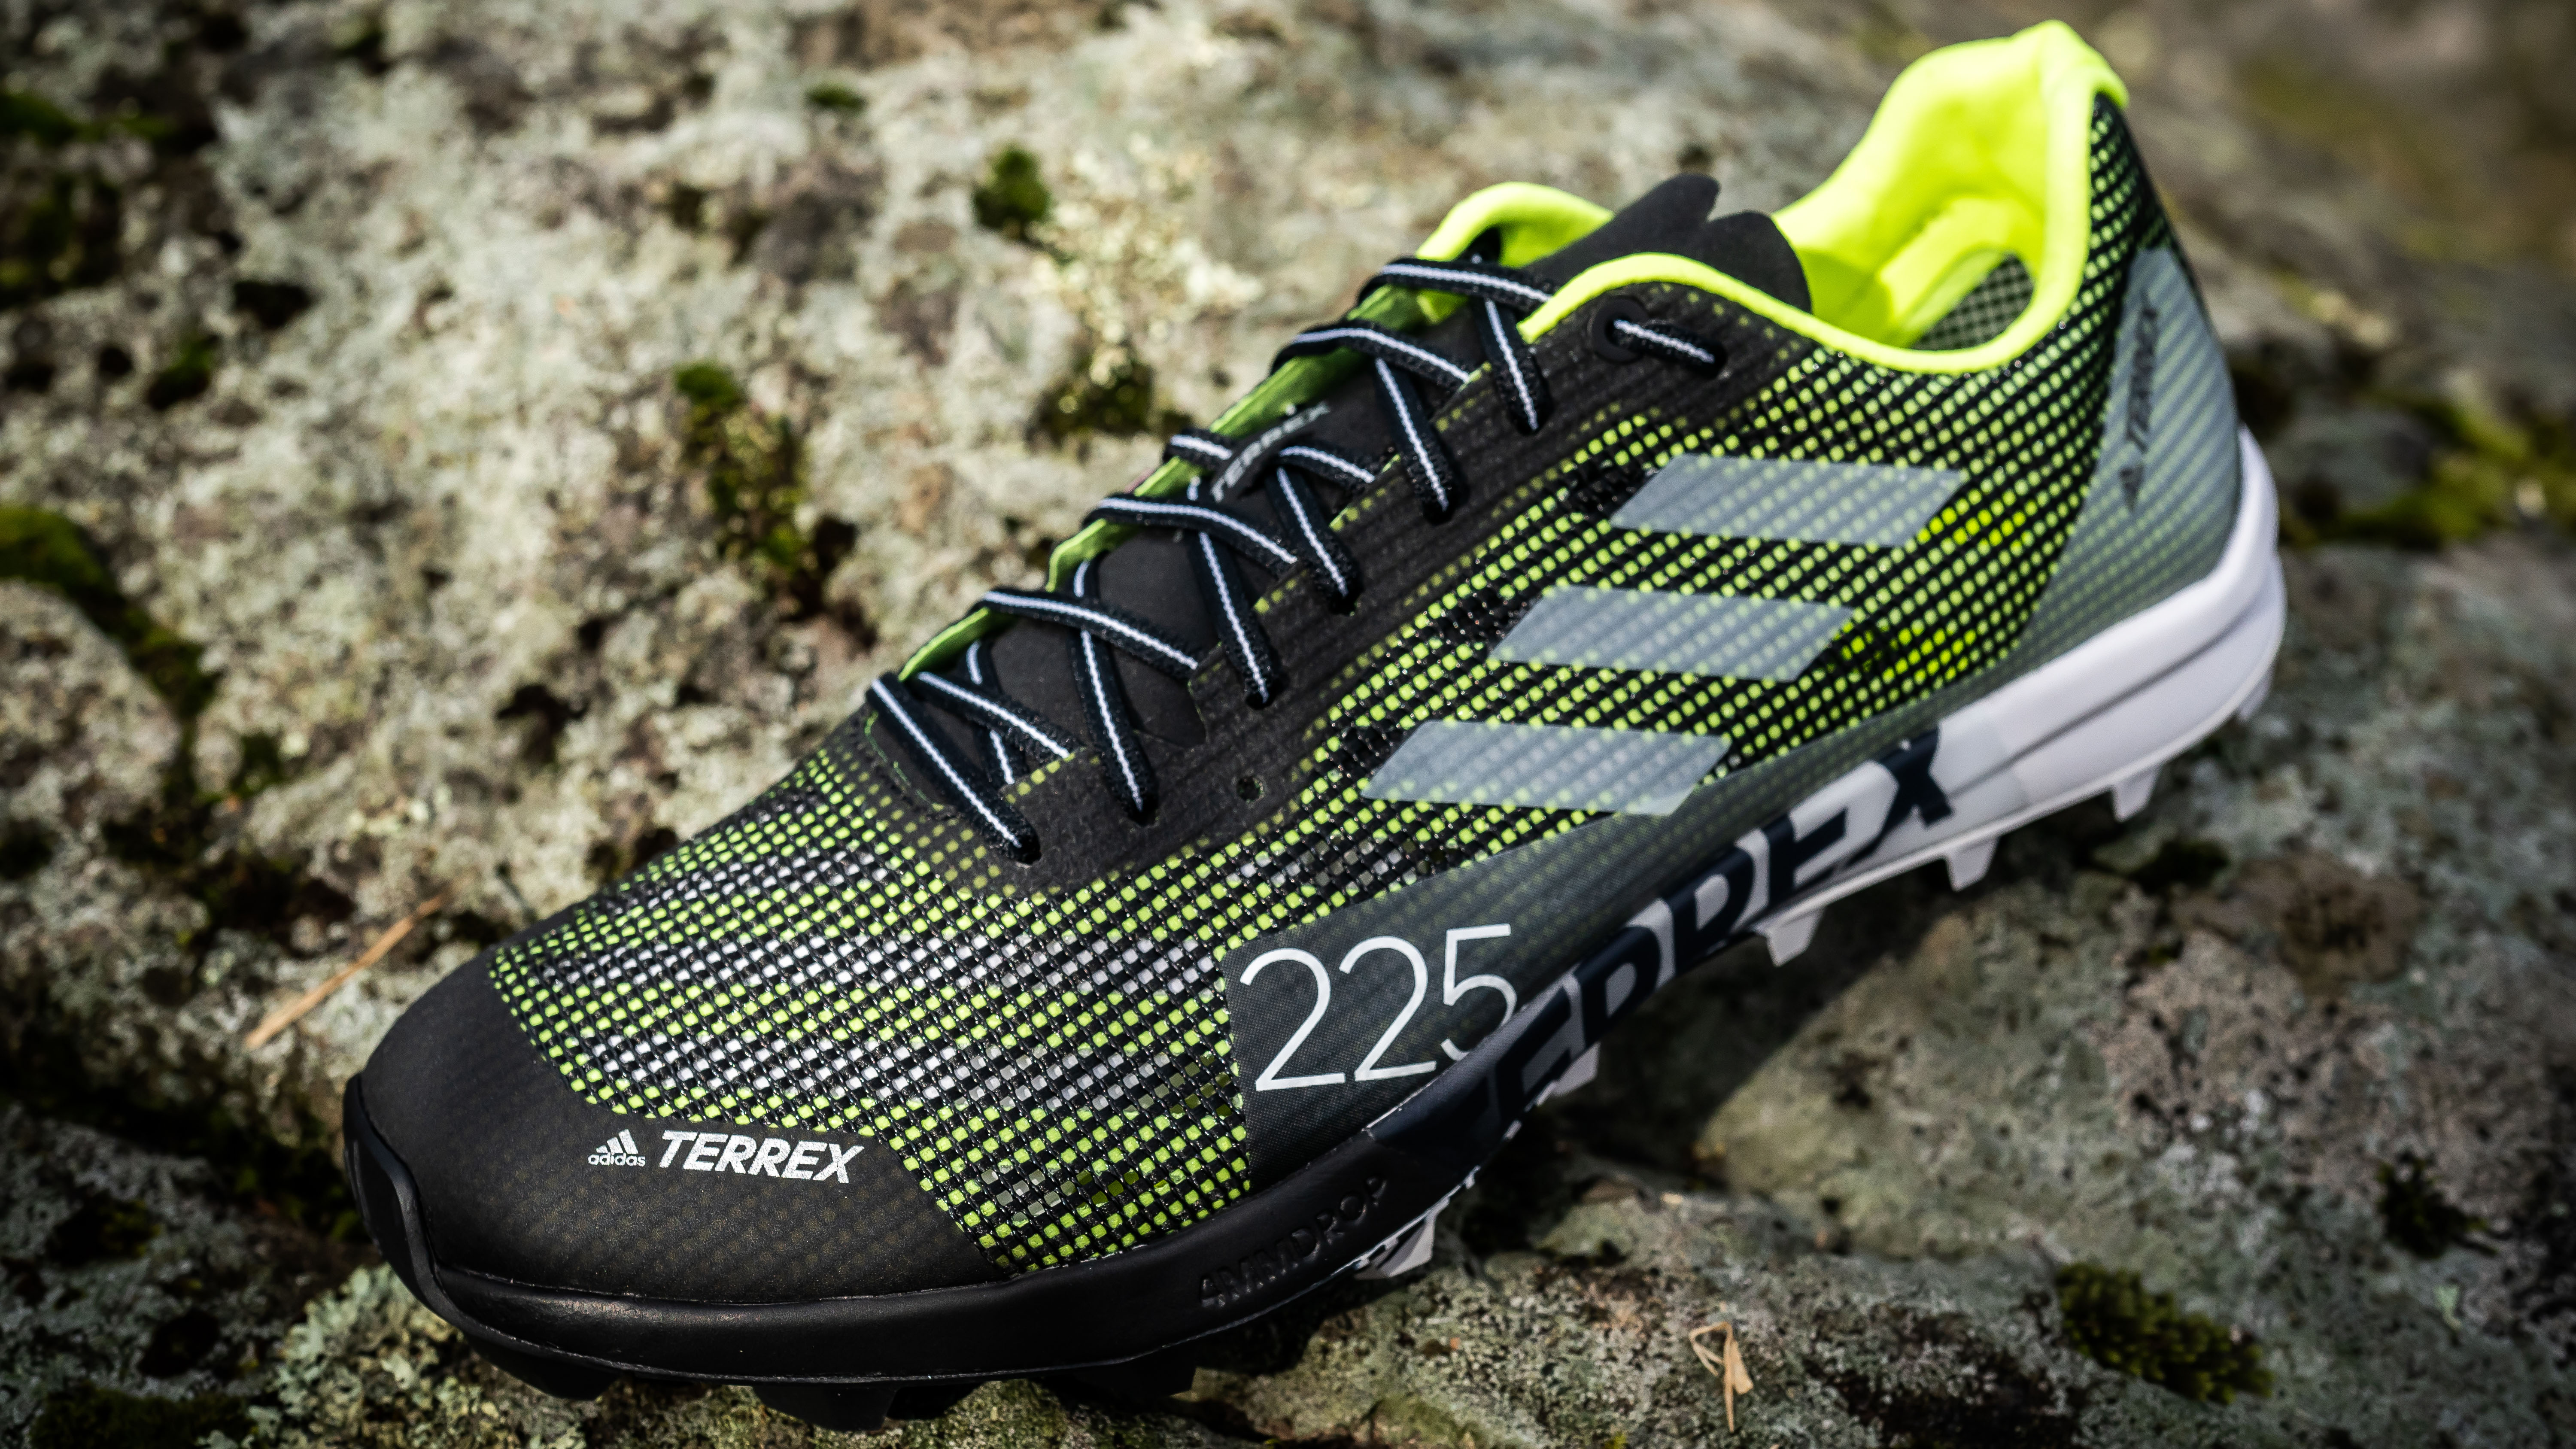 adidas Speed Pro SG Shoe Review – First Look.   iancorless.com ...